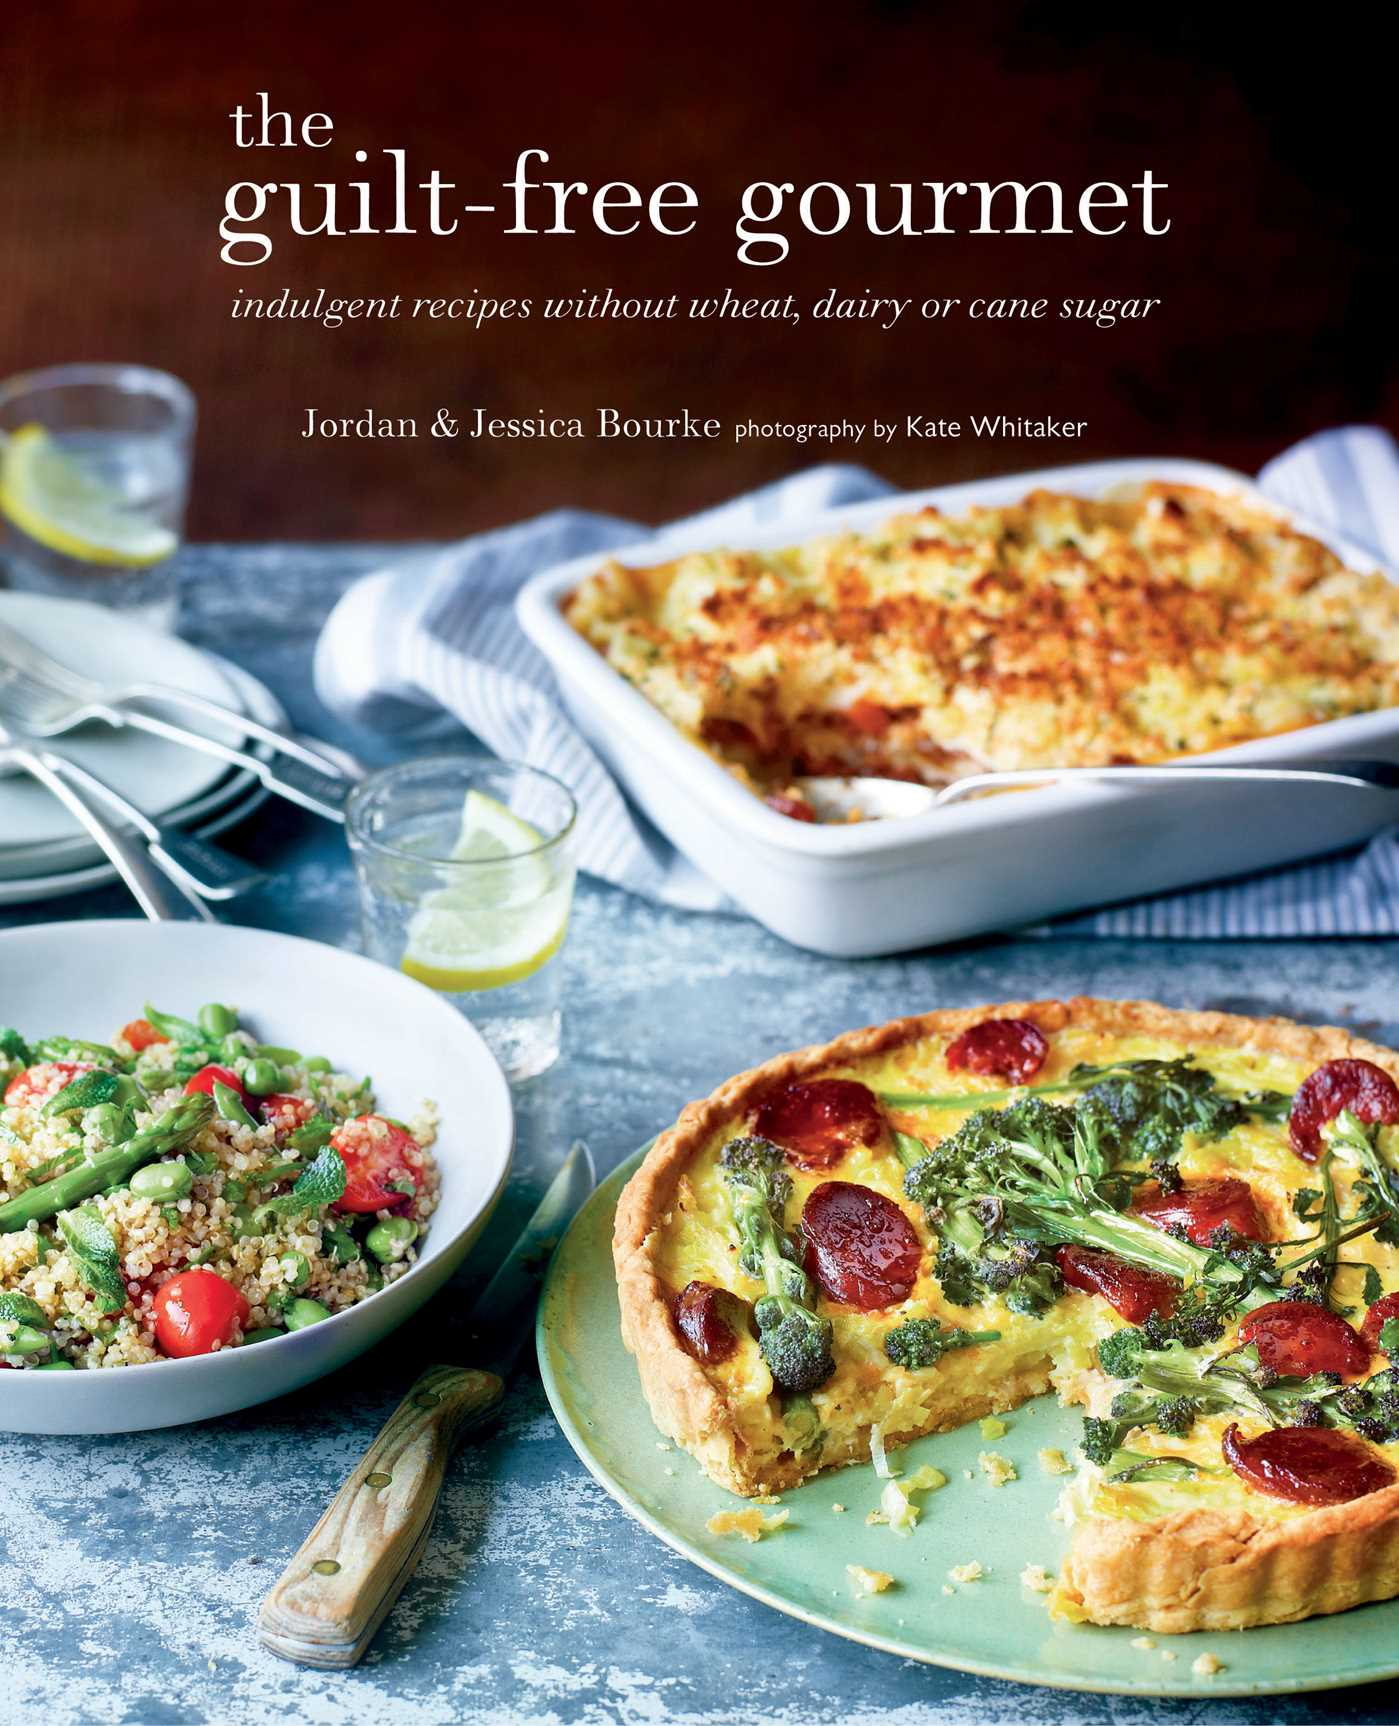 Matemáticas repollo Eslovenia  The Guilt-free Gourmet | Book by Jordan Bourke | Official Publisher Page |  Simon & Schuster